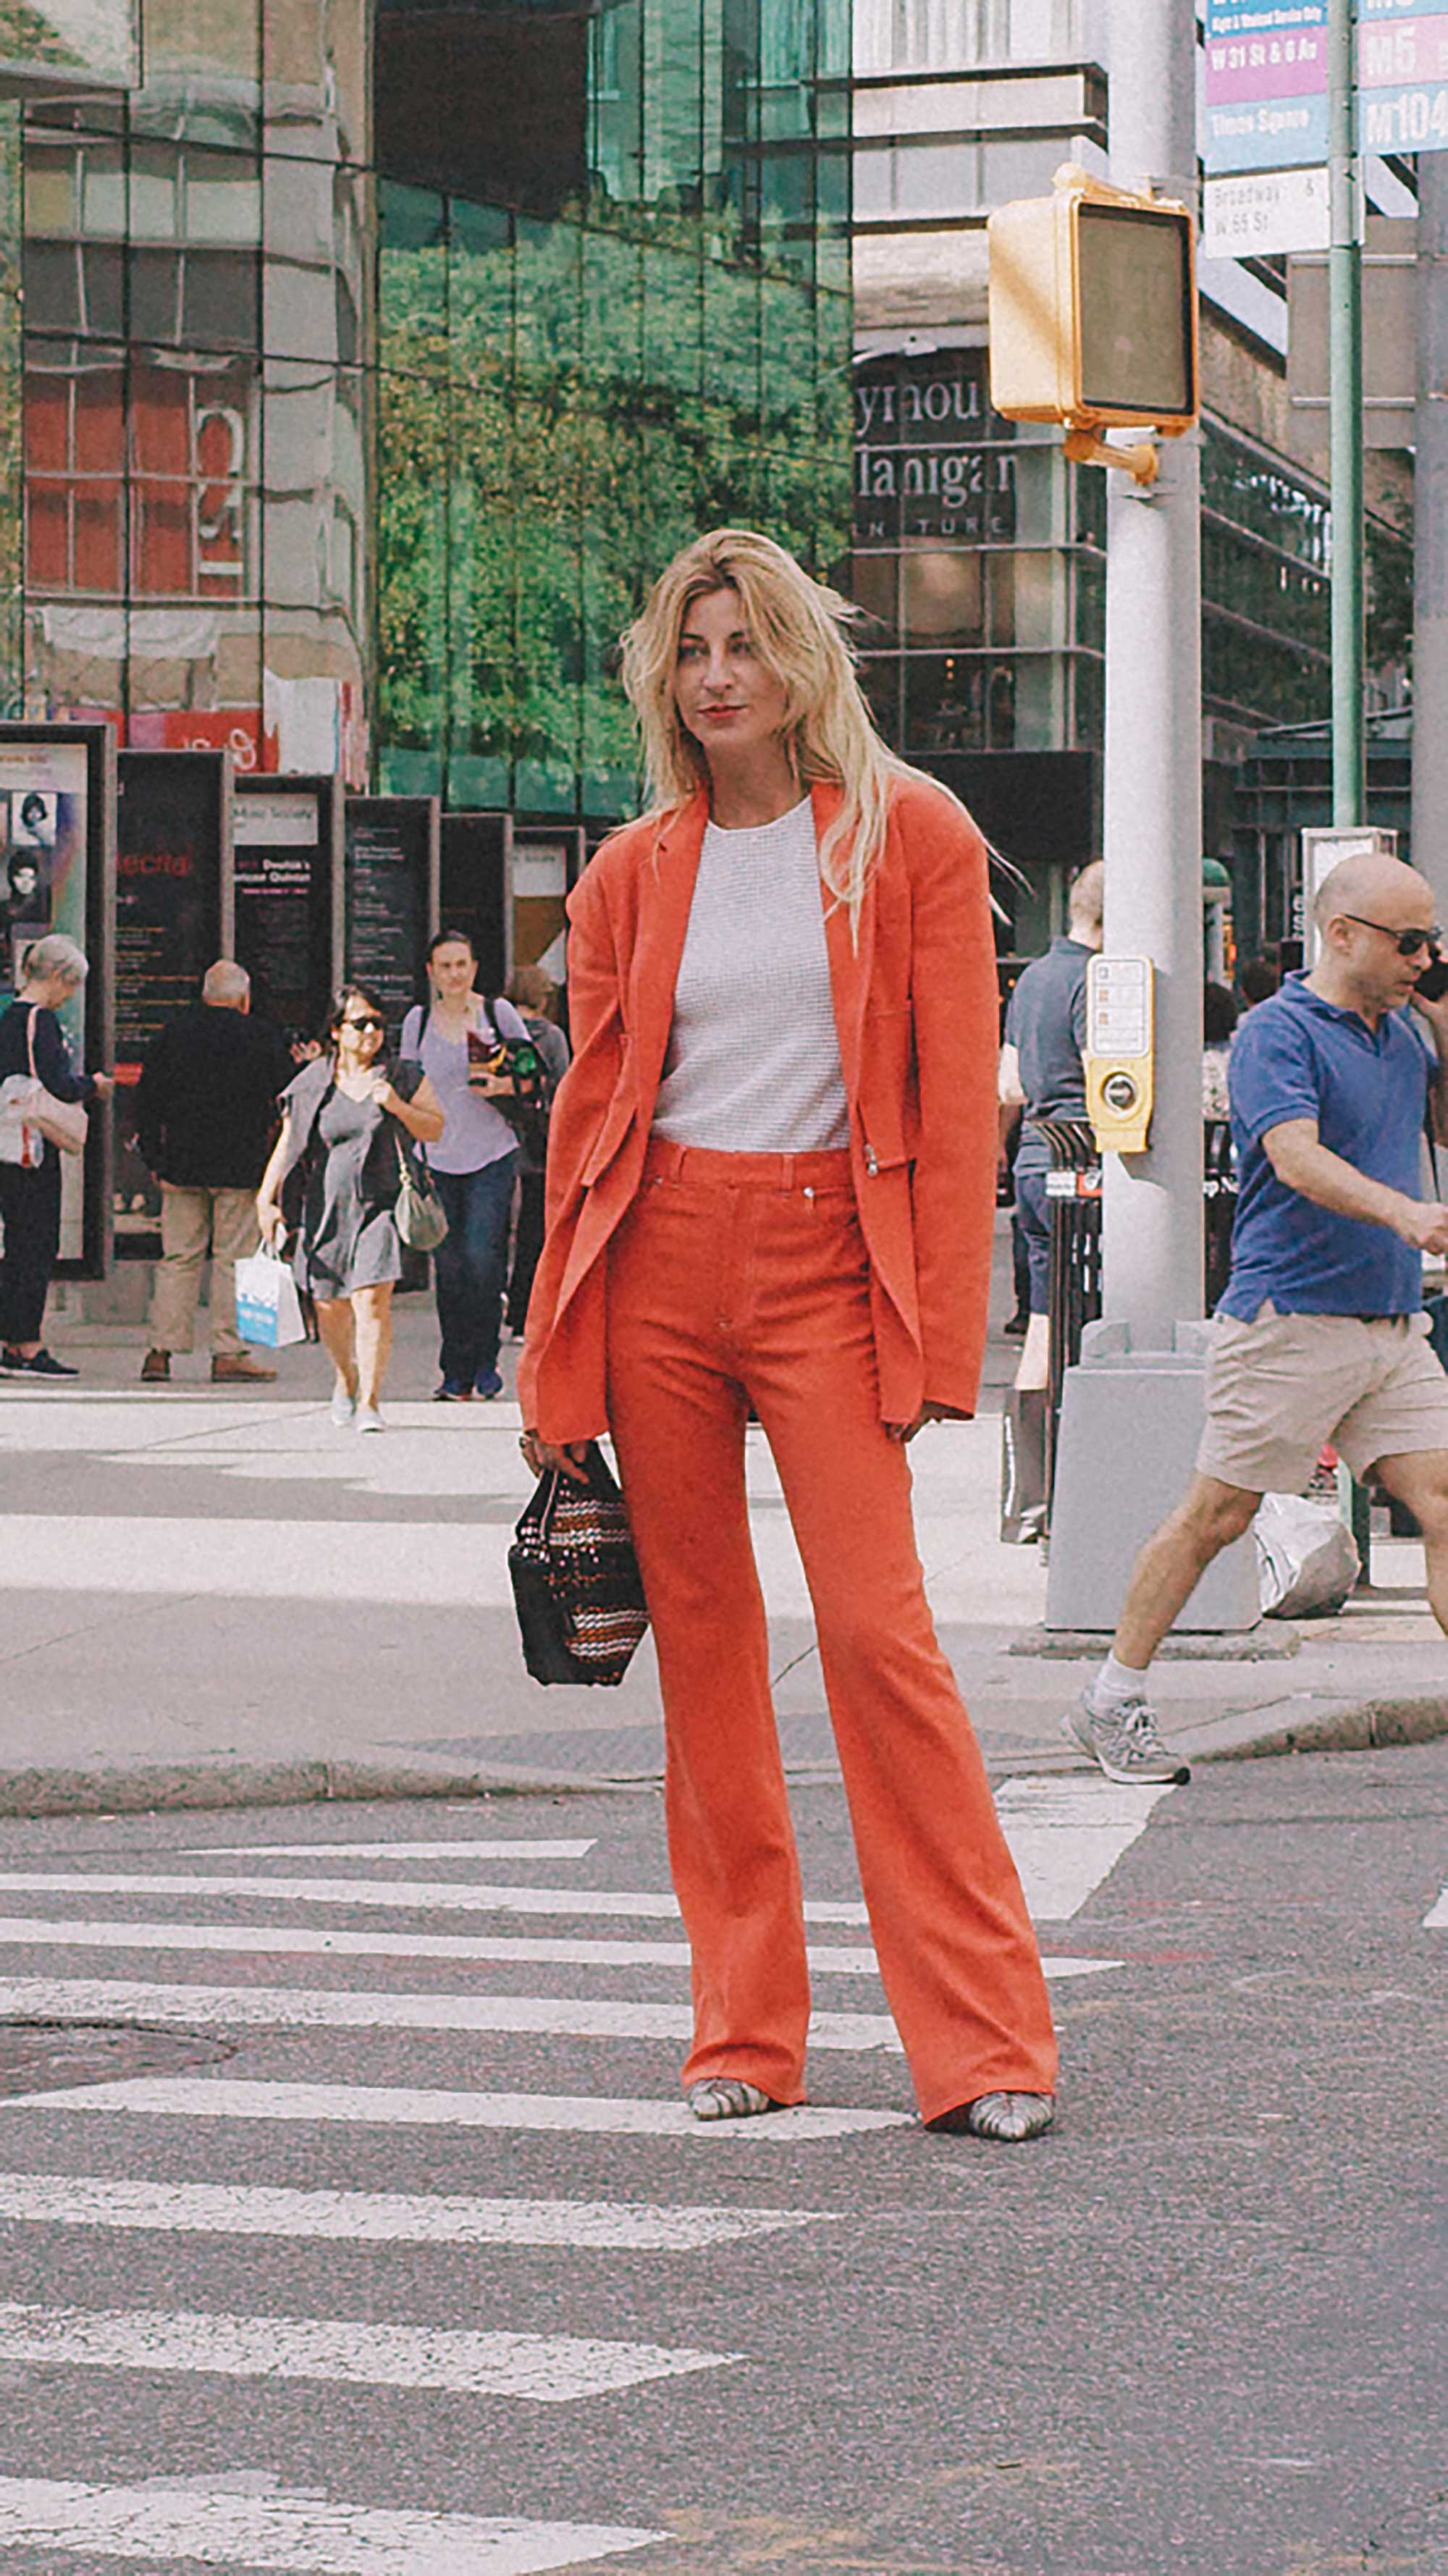 Best outfits of New York Fashion Week street style 2019 Day One Photo by @J2martinez Jose J. Martinez www.jmrtnz.com -126.jpg